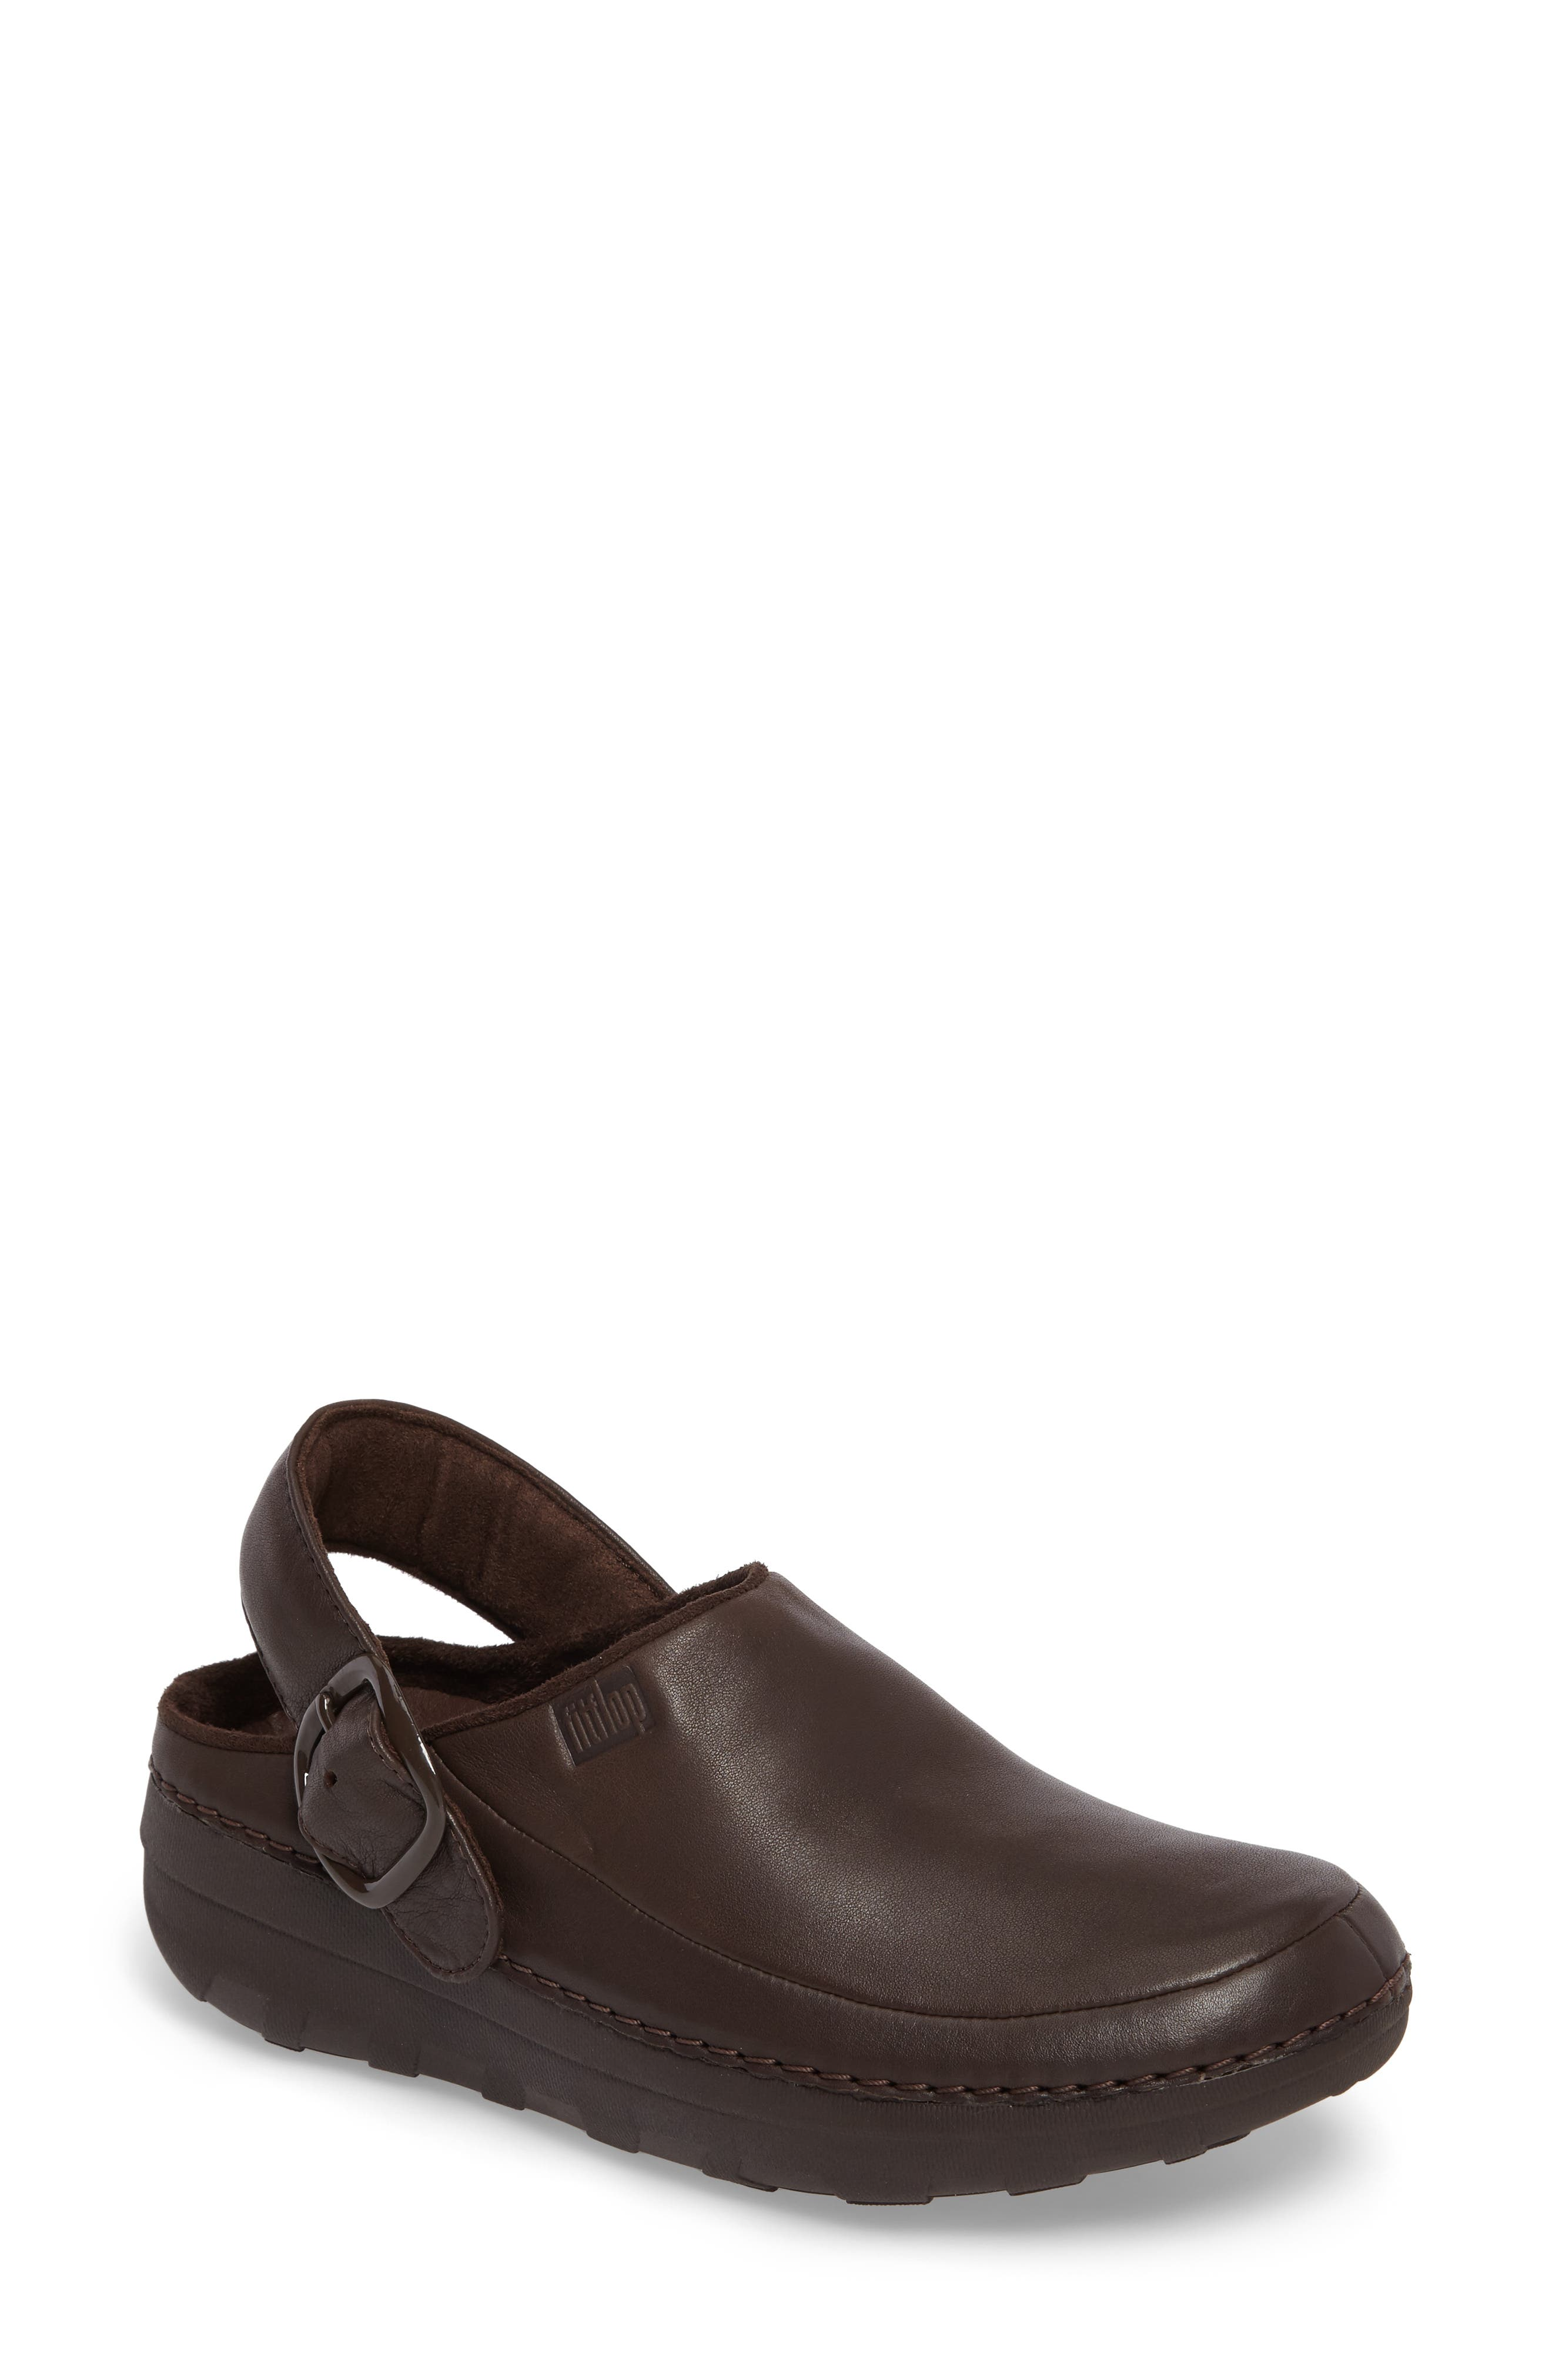 Gogh Pro - Superlight Clog,                         Main,                         color, Chocolate Brown Leather